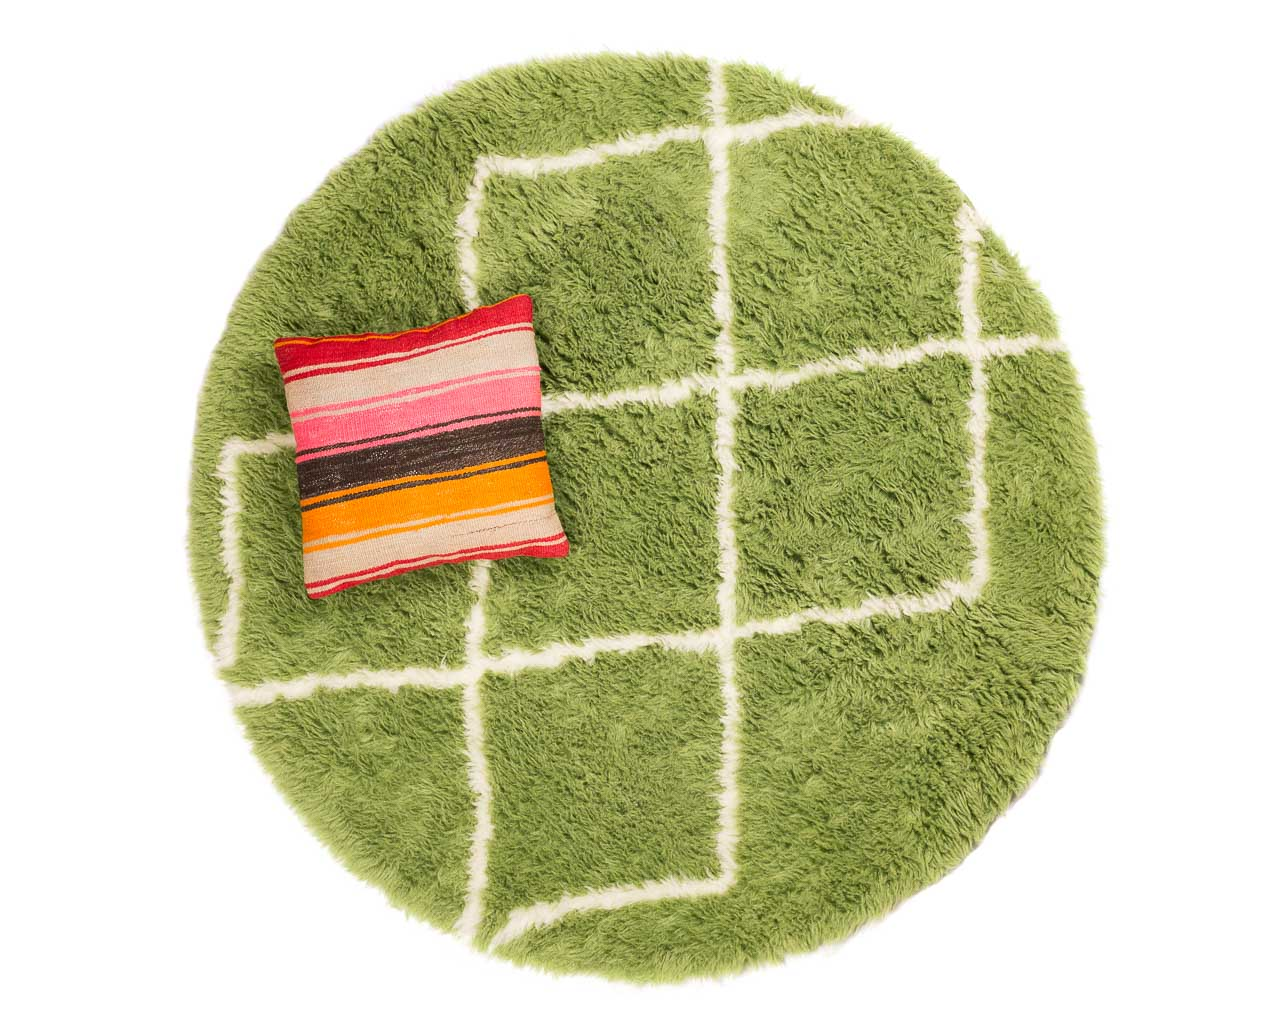 green rug with white rhombus pattern